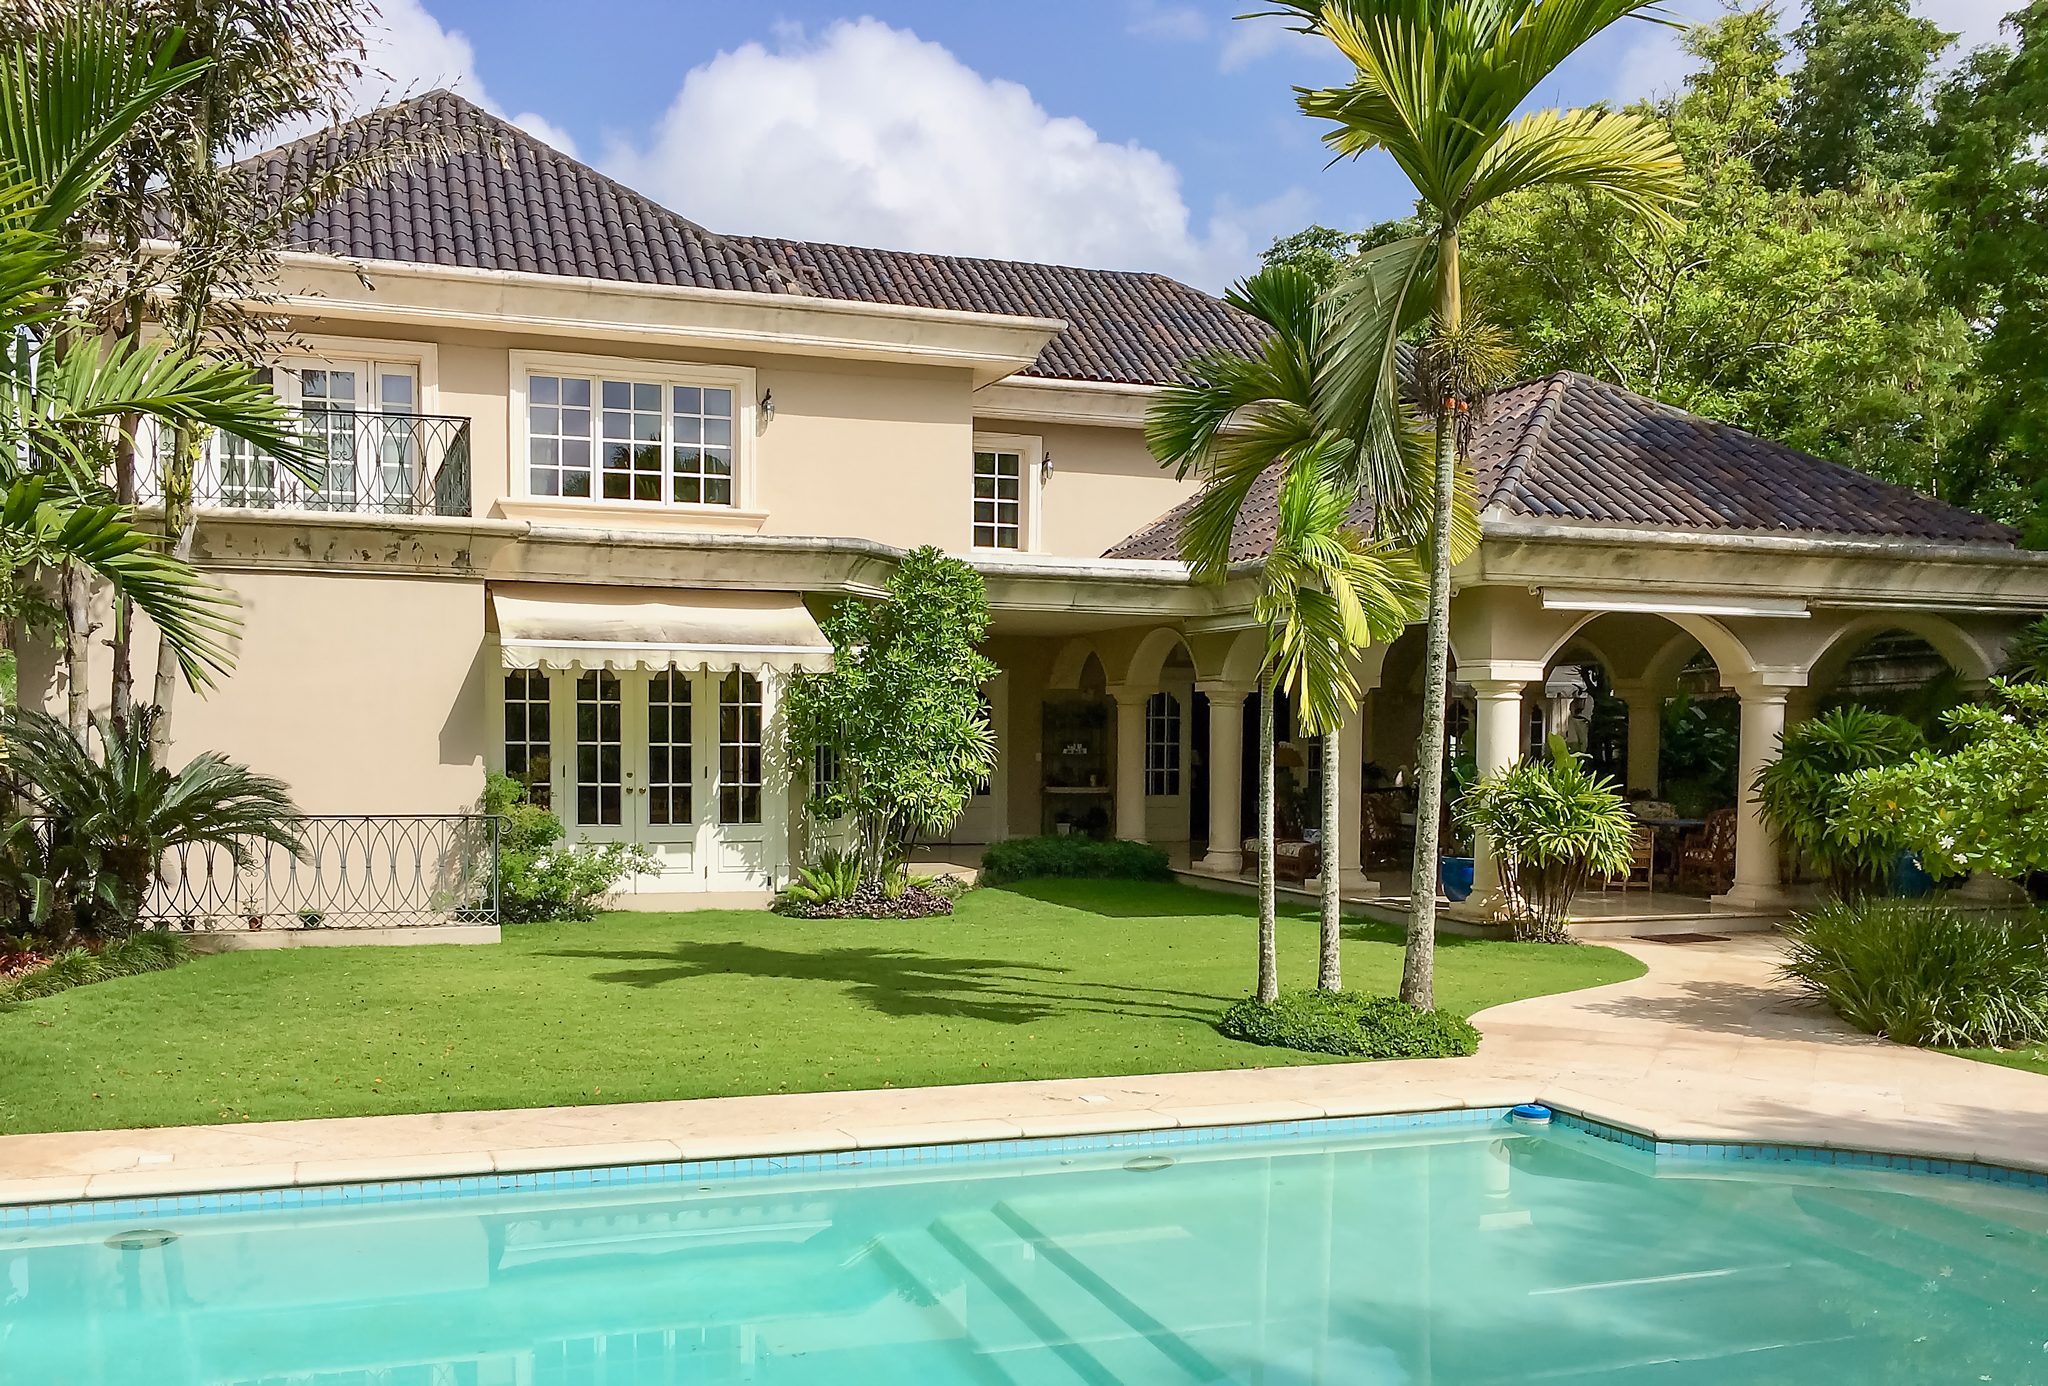 BACK to the MARKET! JUST REDUCED by USD 1MM at Santo Domingo, Cuesta Hermosa Luxury Family Home